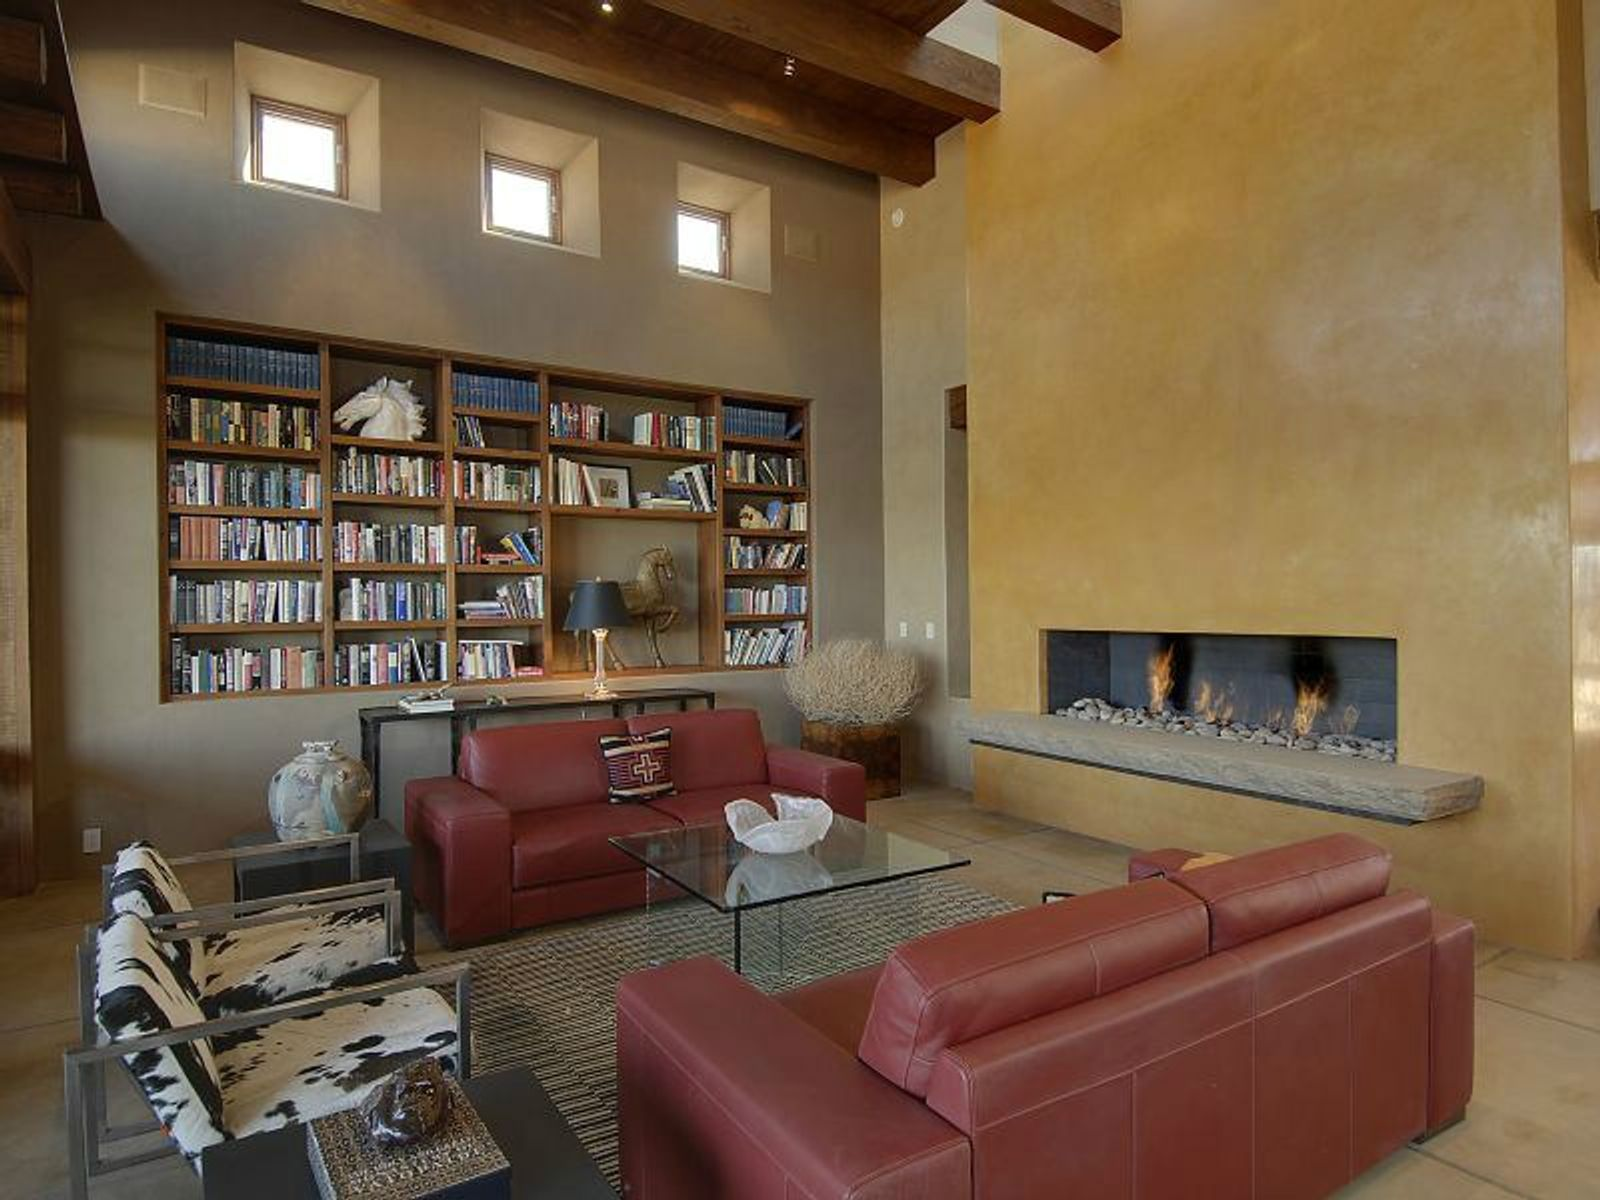 115 West Wildflower Drive, Santa Fe NM Single Family Home - Santa Fe Real Estate